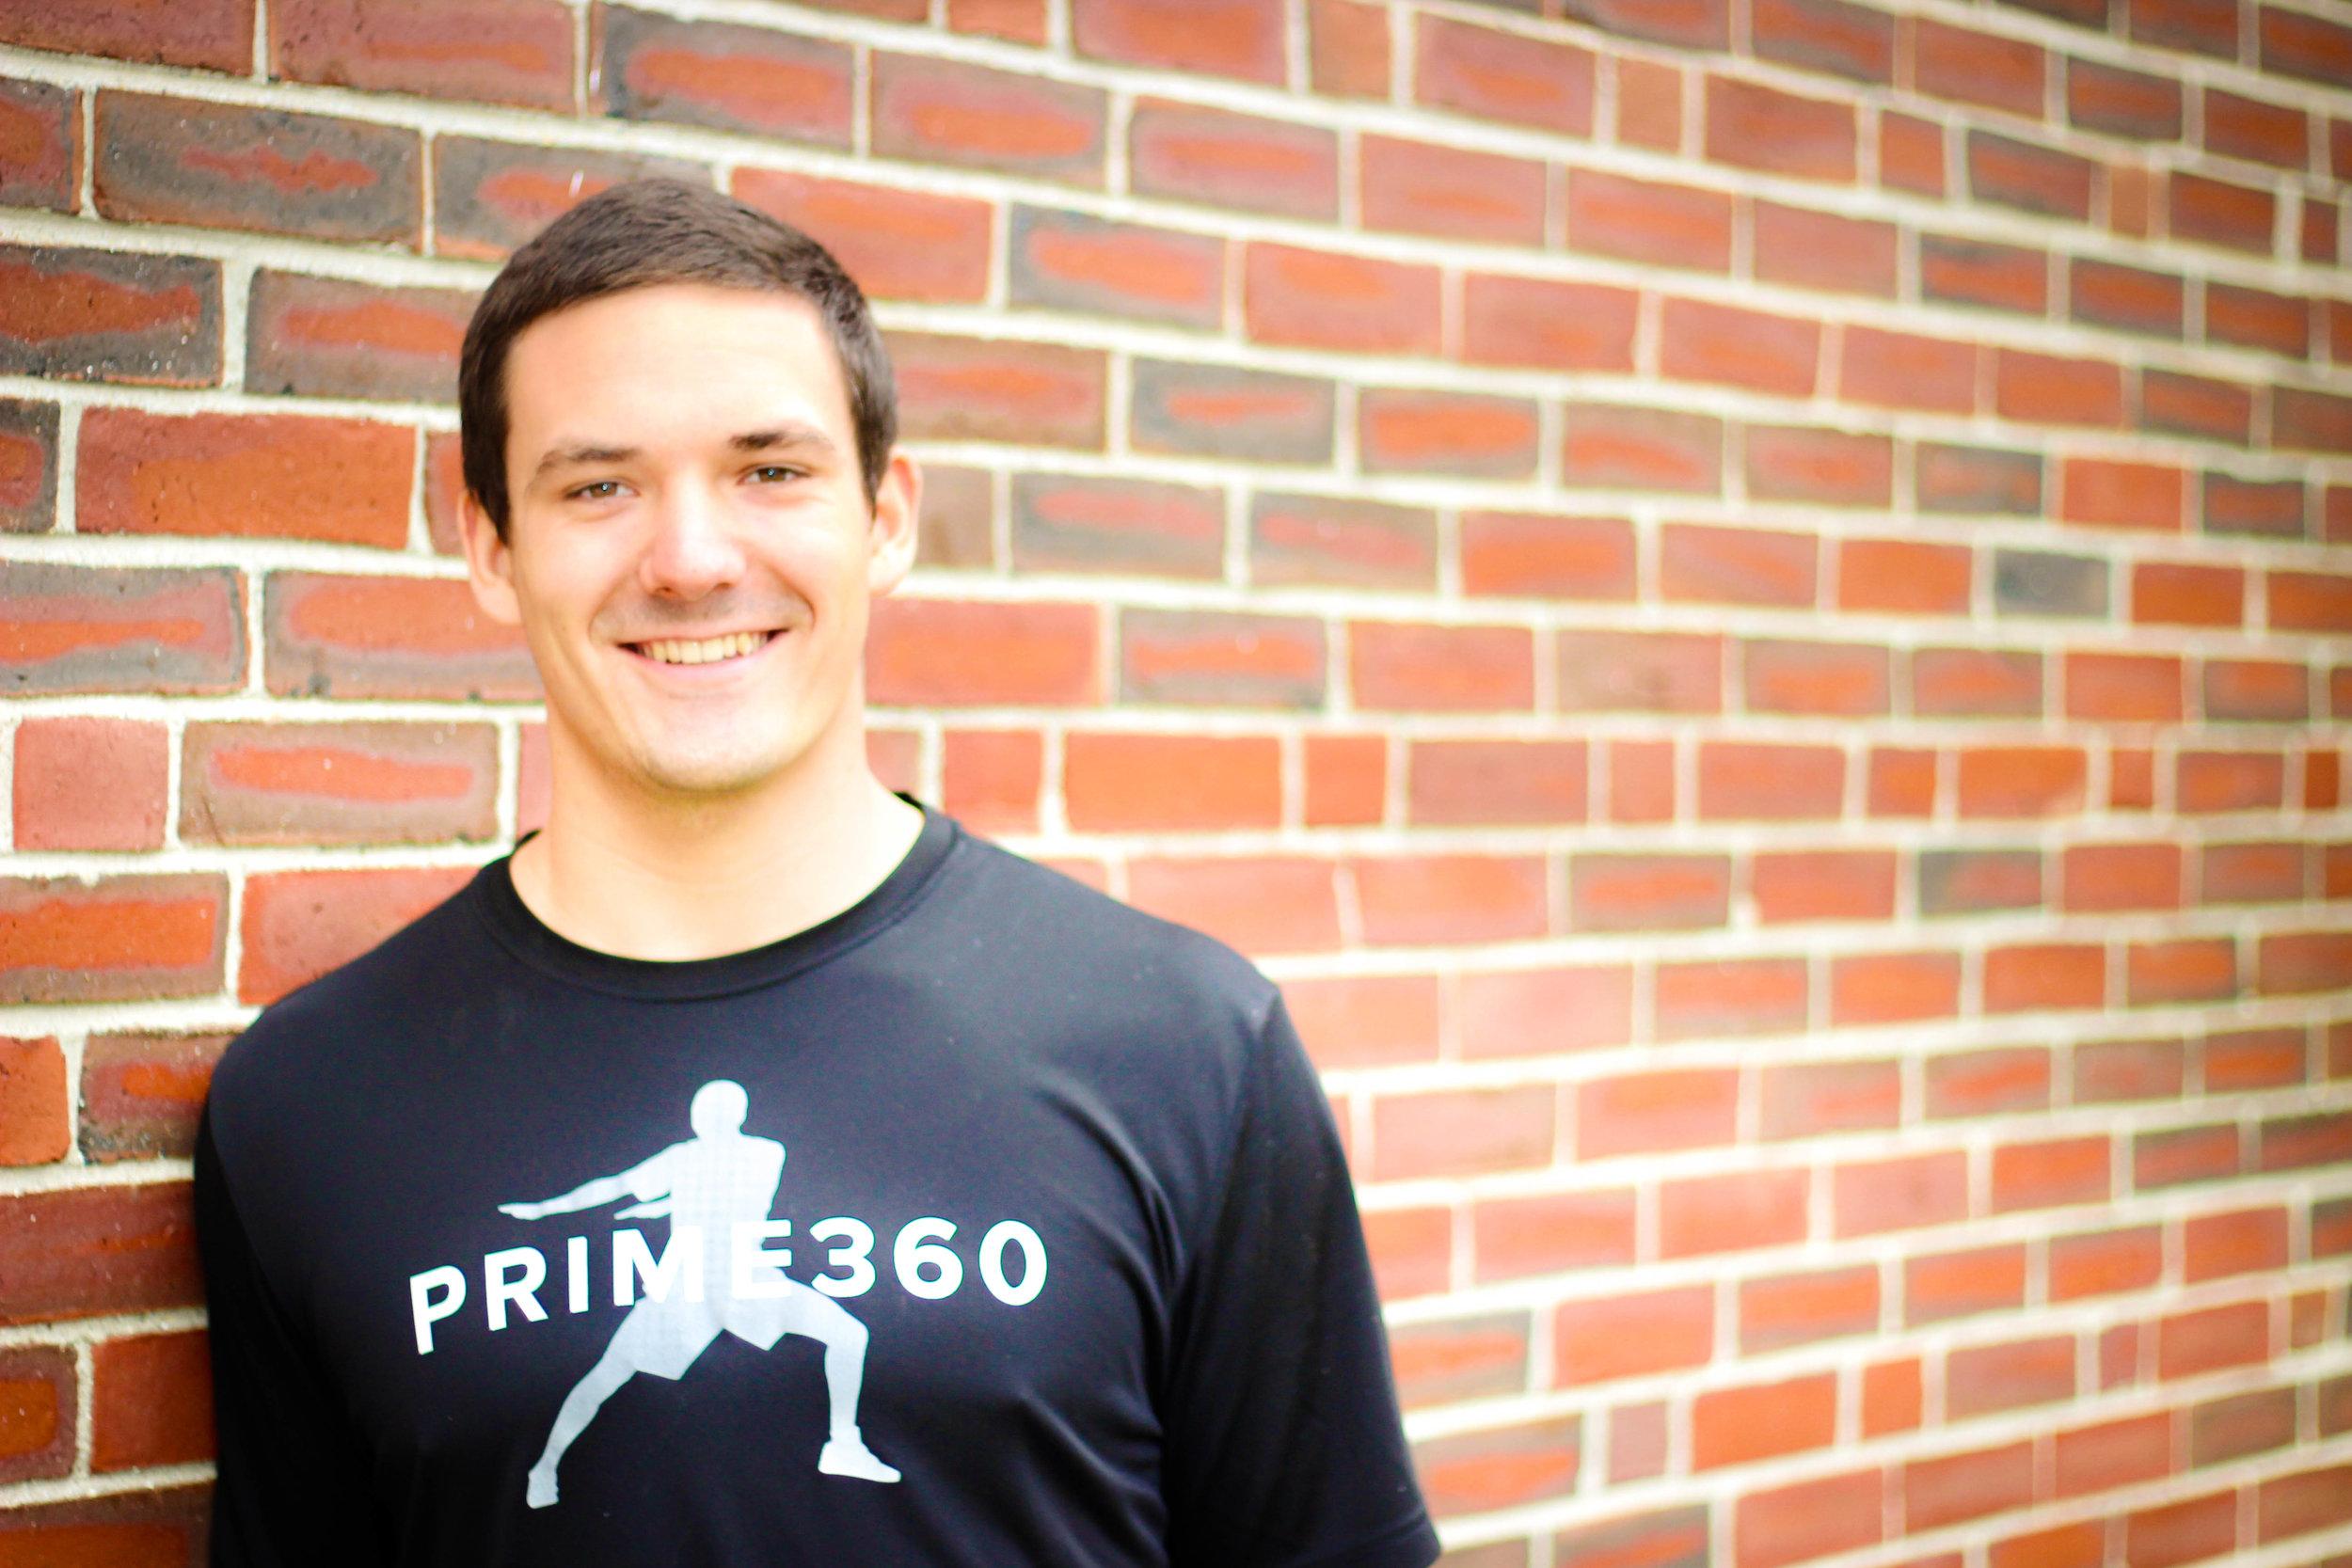 My name is Robert Porter. I'm a certified Personal Trainer/Performance Enhancement Coach and am currently attending University of Southern Maine where I will earn a degree in Athletic Training. I have been working with PRIME360 for over two years. Being a former client and now employee of PRIME360 has helped me realize that exercise and a healthy lifestyle is extremely important, not only for well-being, but also to live life to my fullest potential.   Growing up I played football, basketball, track, and baseball. My passion for sports has led to several injuries throughout my playing career. These injuries caused me to miss very important seasons in my life.  I don't want other athletes to experience and go through what I did and because of this my goal is to make sure everyone who trains with me can play the entire season without pain and to the best of their ability.  Whether it's helping my athletes stay injury free or getting clients out on that hike they have been dreaming about, my goal is to help all of my clients at PRIME360 live the healthy, active lifestyle they want.   Your coach/teammate/friend,  Robbie